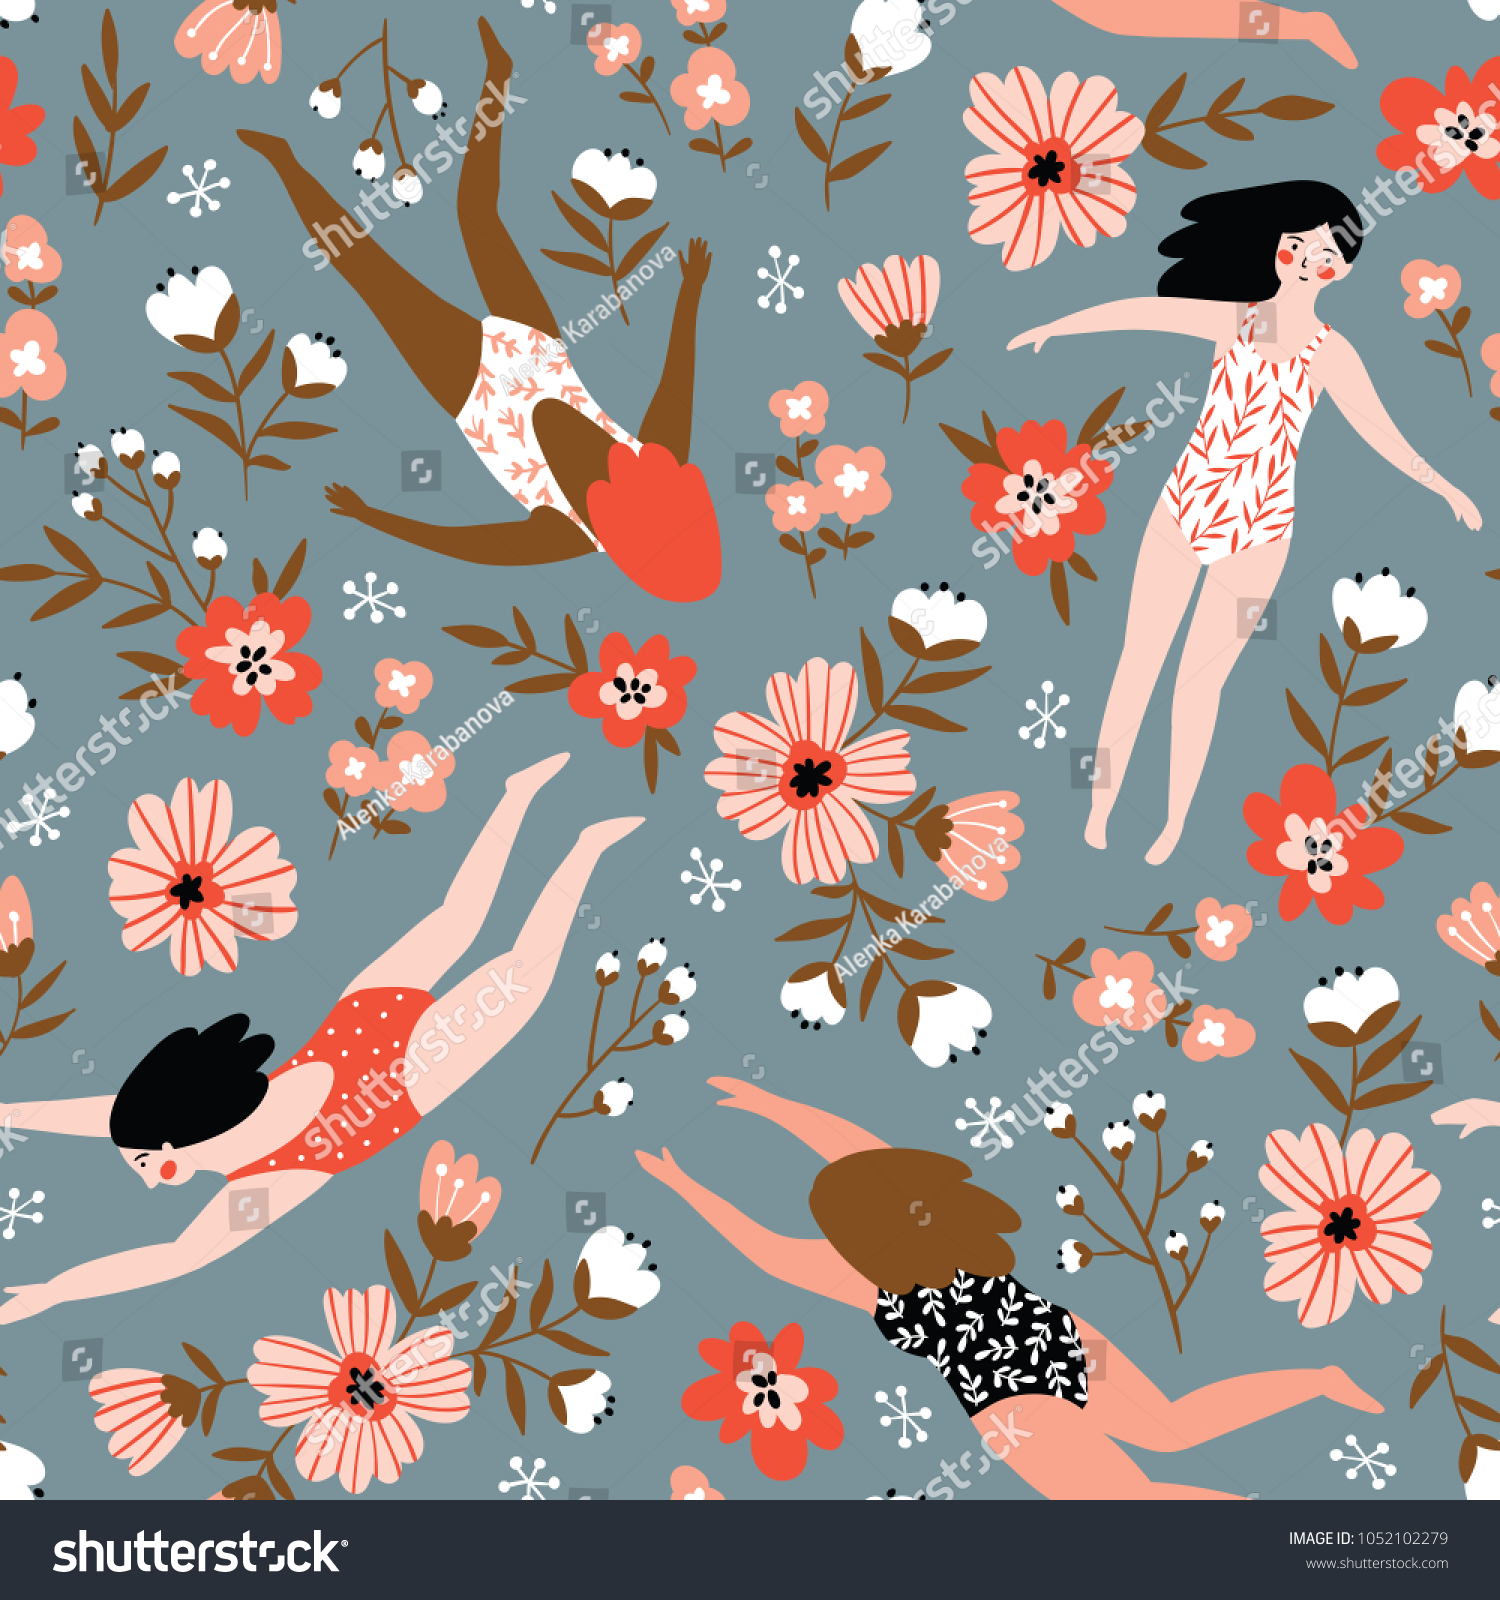 Repeated background with figures of young girls in swimsuits of different nationalities. Cute vector illustration in hand drawn style. Swimming collection. Seamless floral pattern.